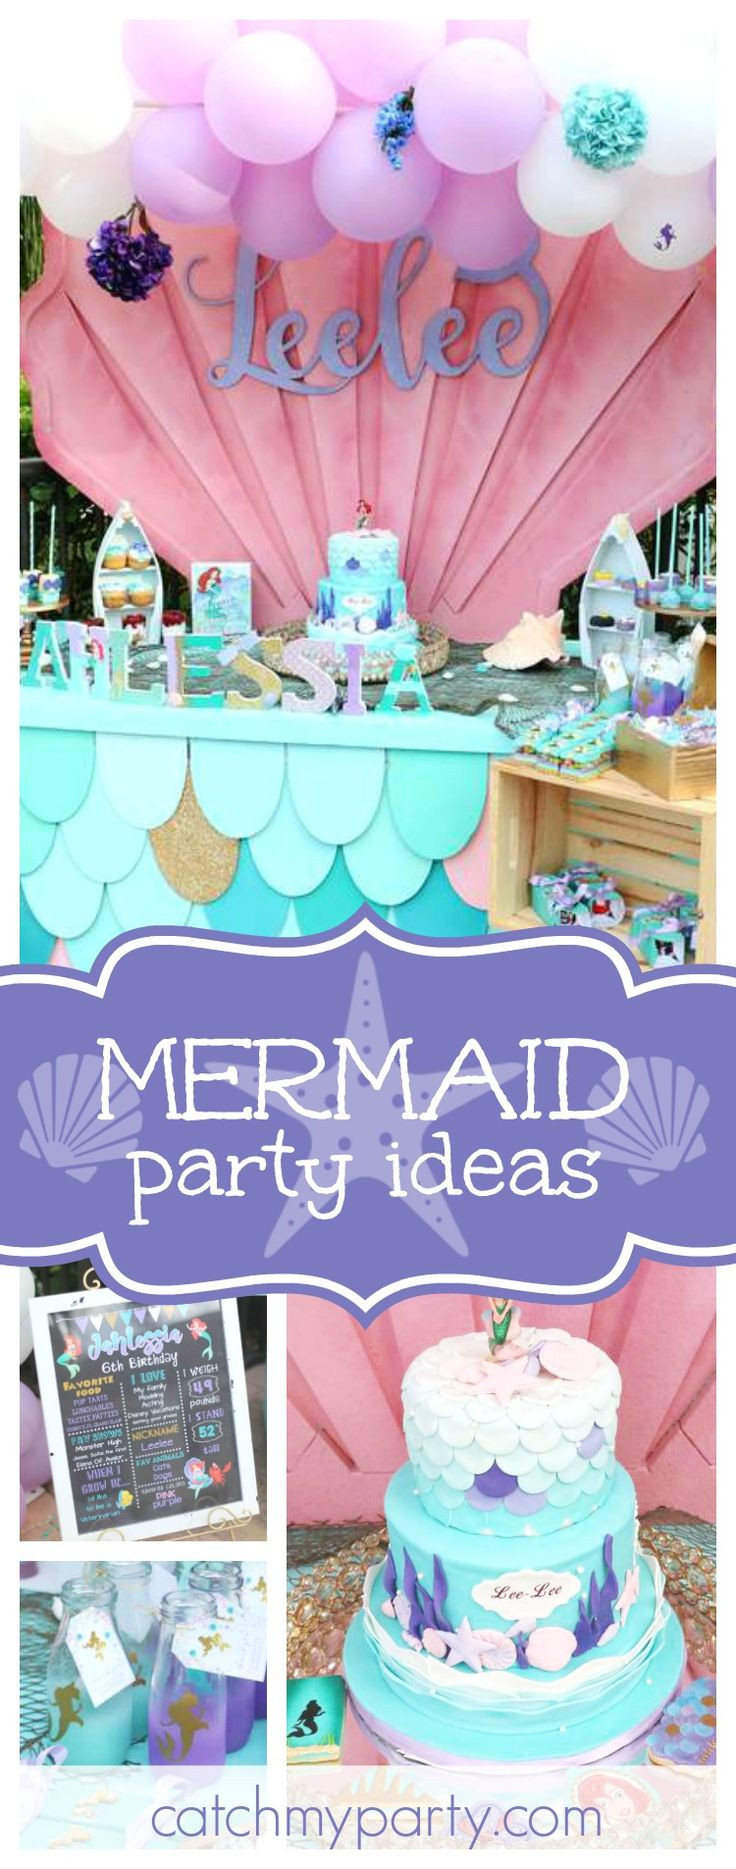 Mermaid Party Ideas Pinterest  3929 best Mermaid Party images on Pinterest